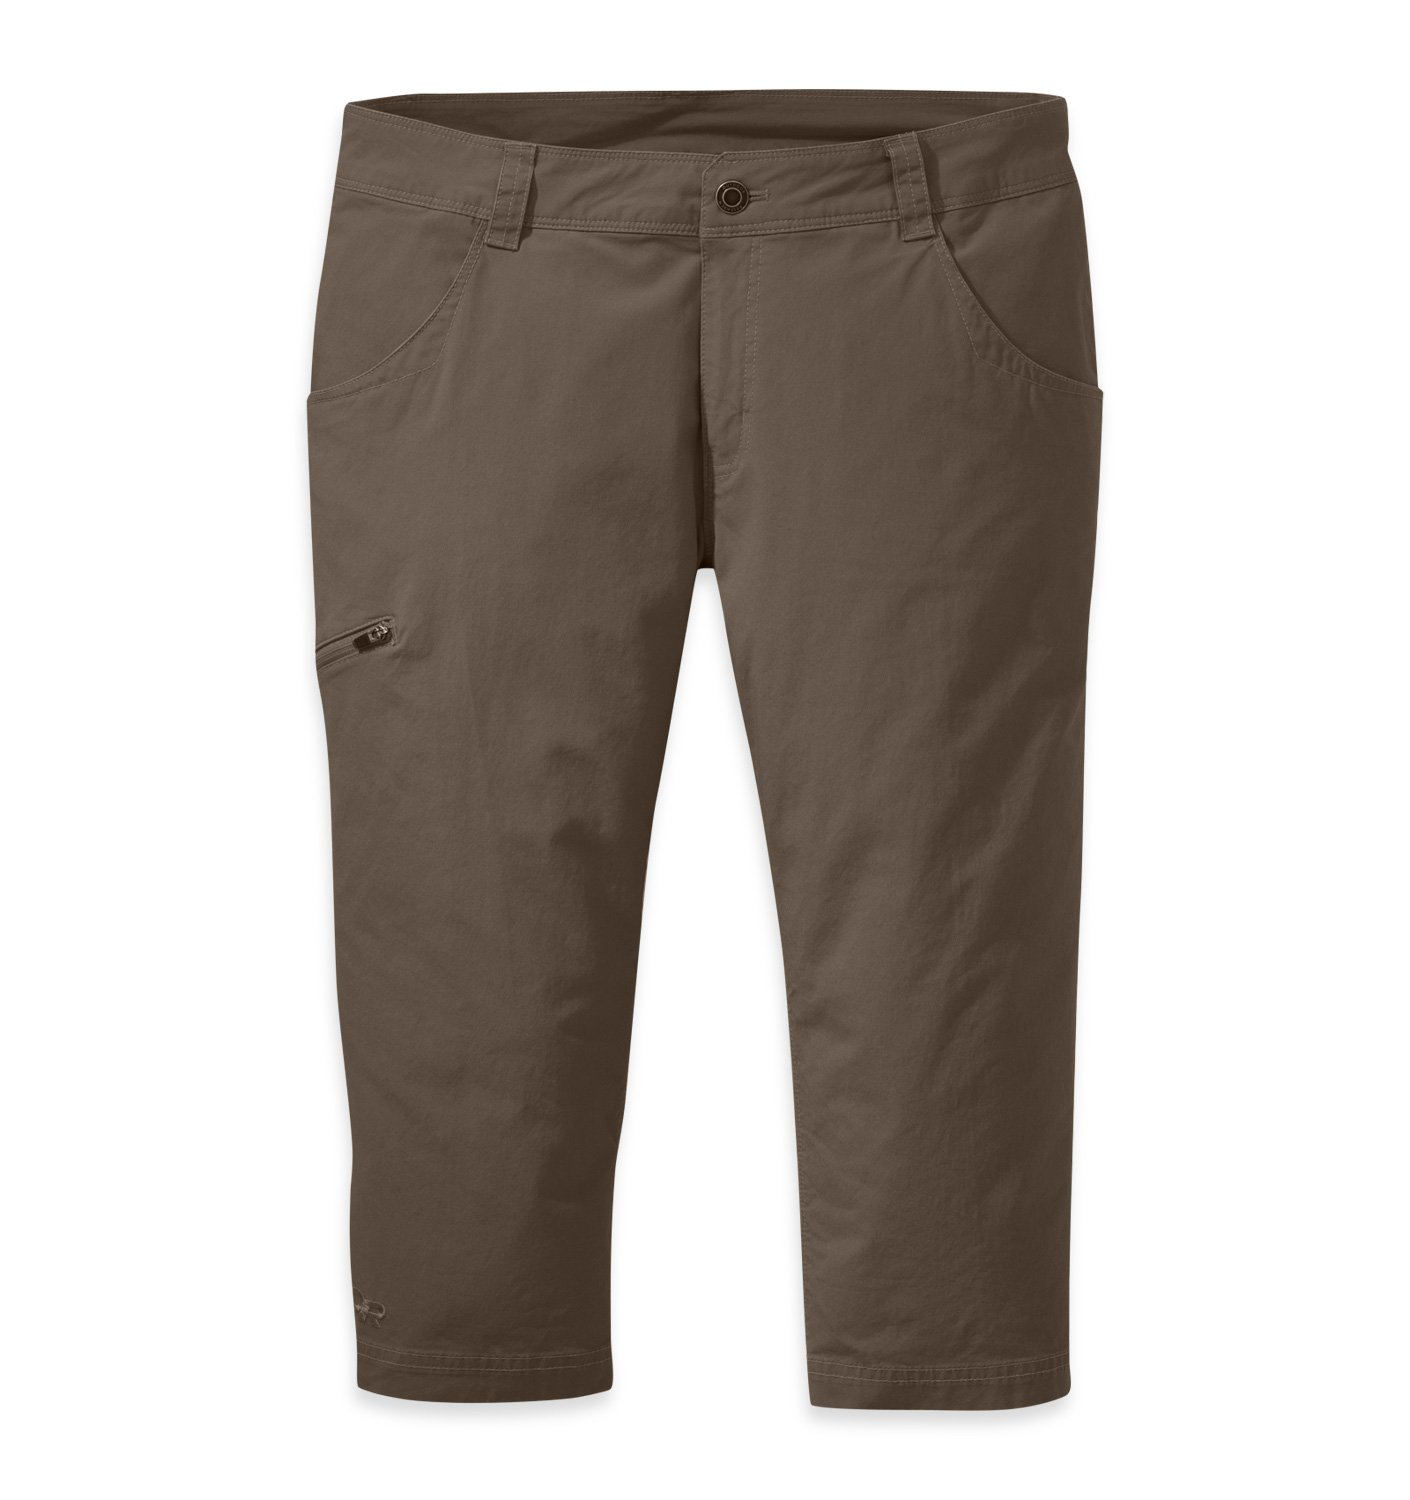 Outdoor Research Zodiac Damens's Capris